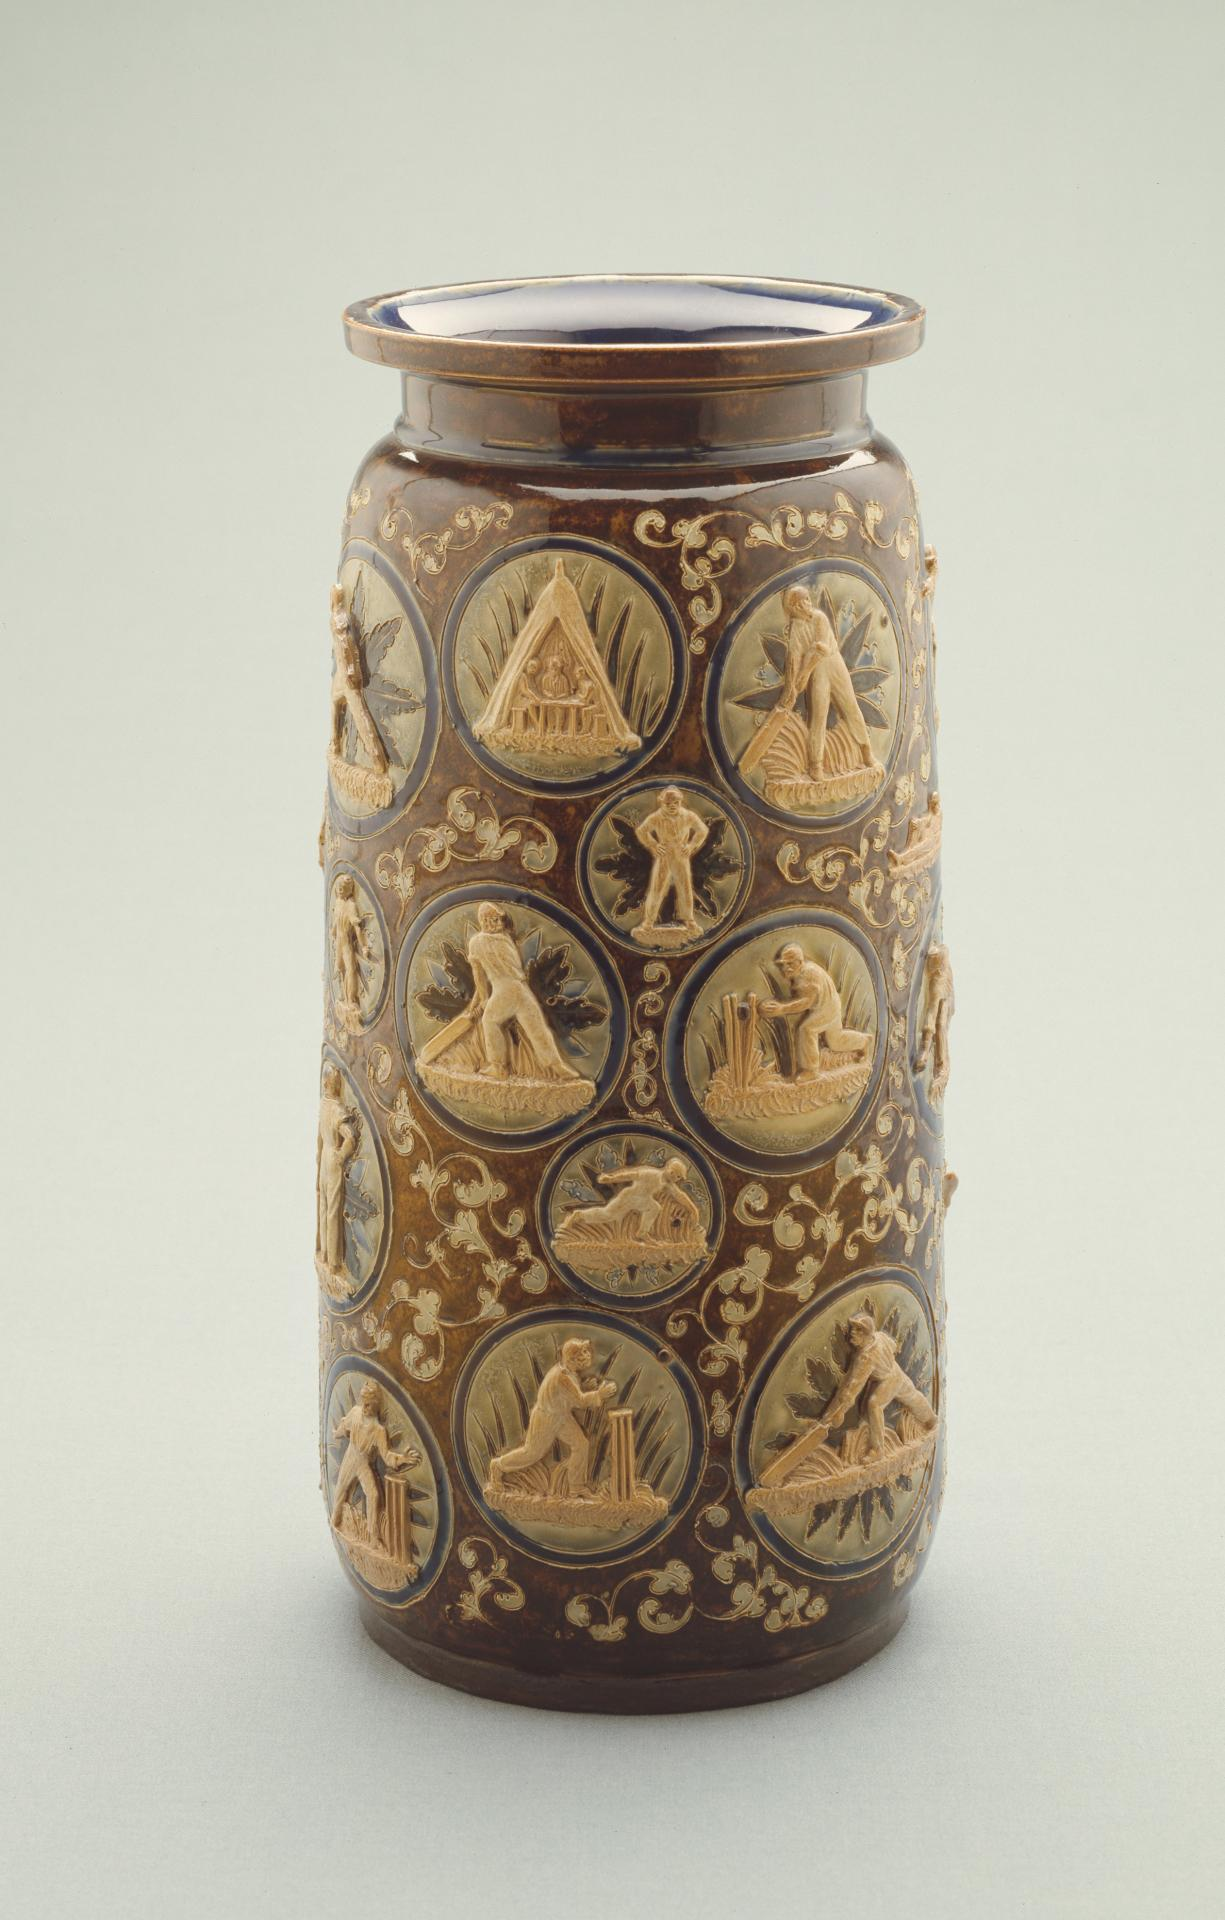 Cricketing vase